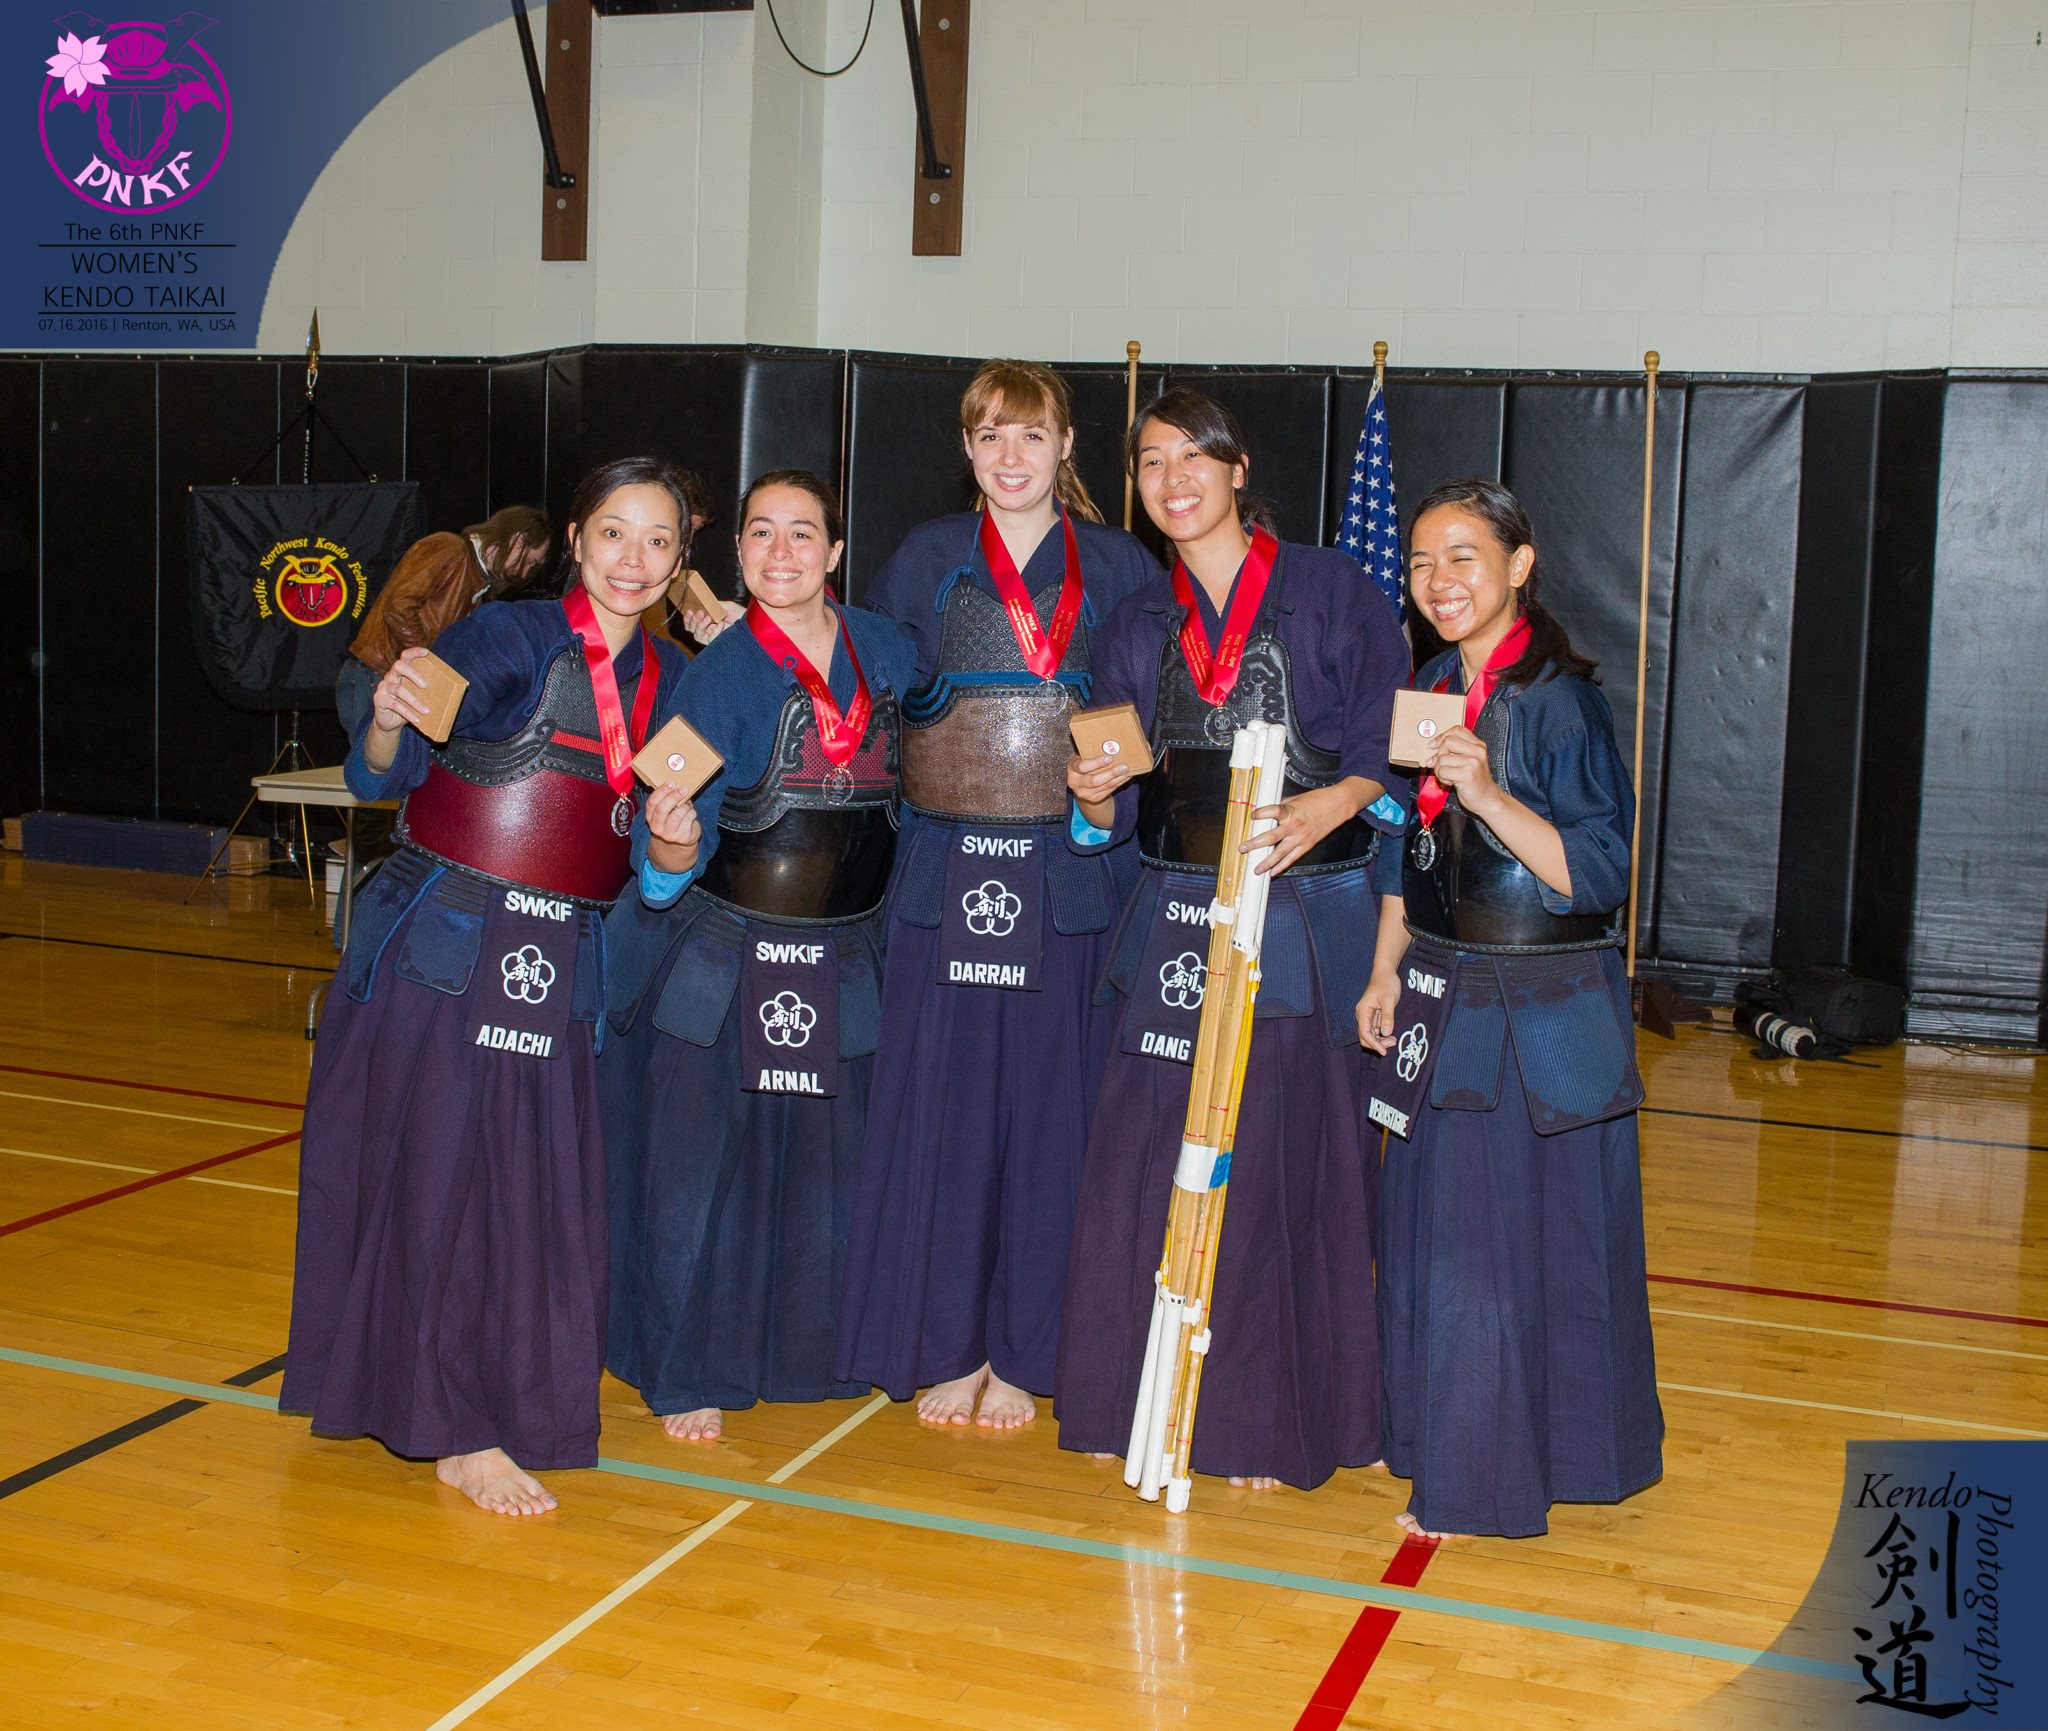 The 5 woman team from the Southwestern USKF (actually, mostly from Texas).  Photo by event photographer Kendo Photography (Seattle).